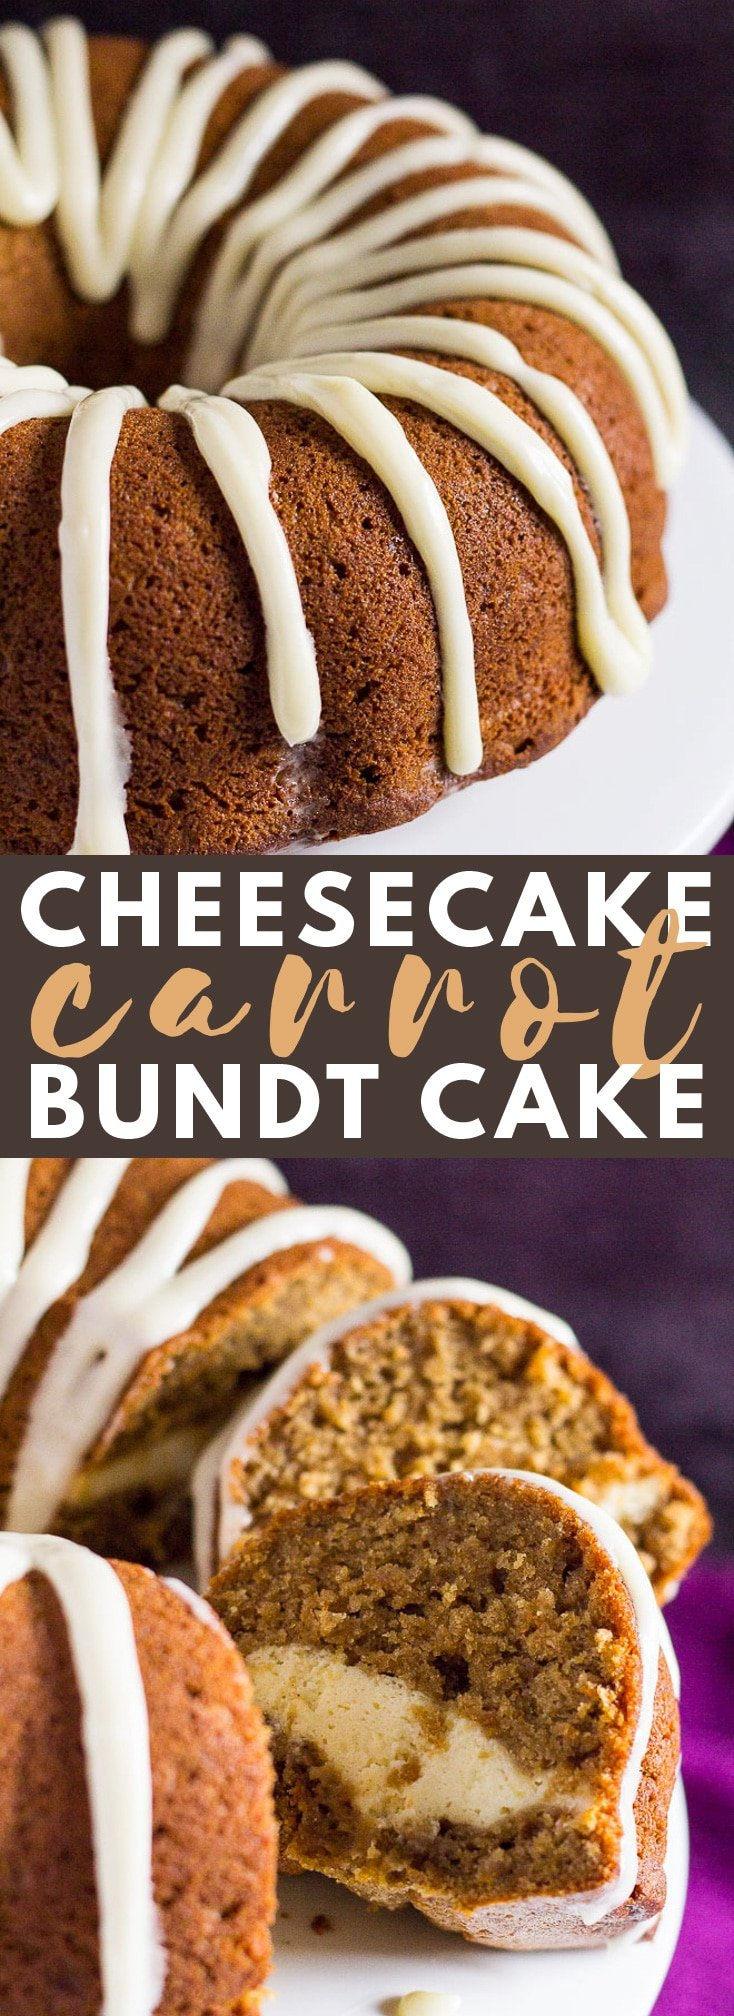 Cheesecake Swirl Carrot Bundt Cake - A deliciously moist and fluffy spiced carrot bundt cake that is stuffed with a creamy cheesecake centre! #carrotcake #bundtcake #cakerecipes